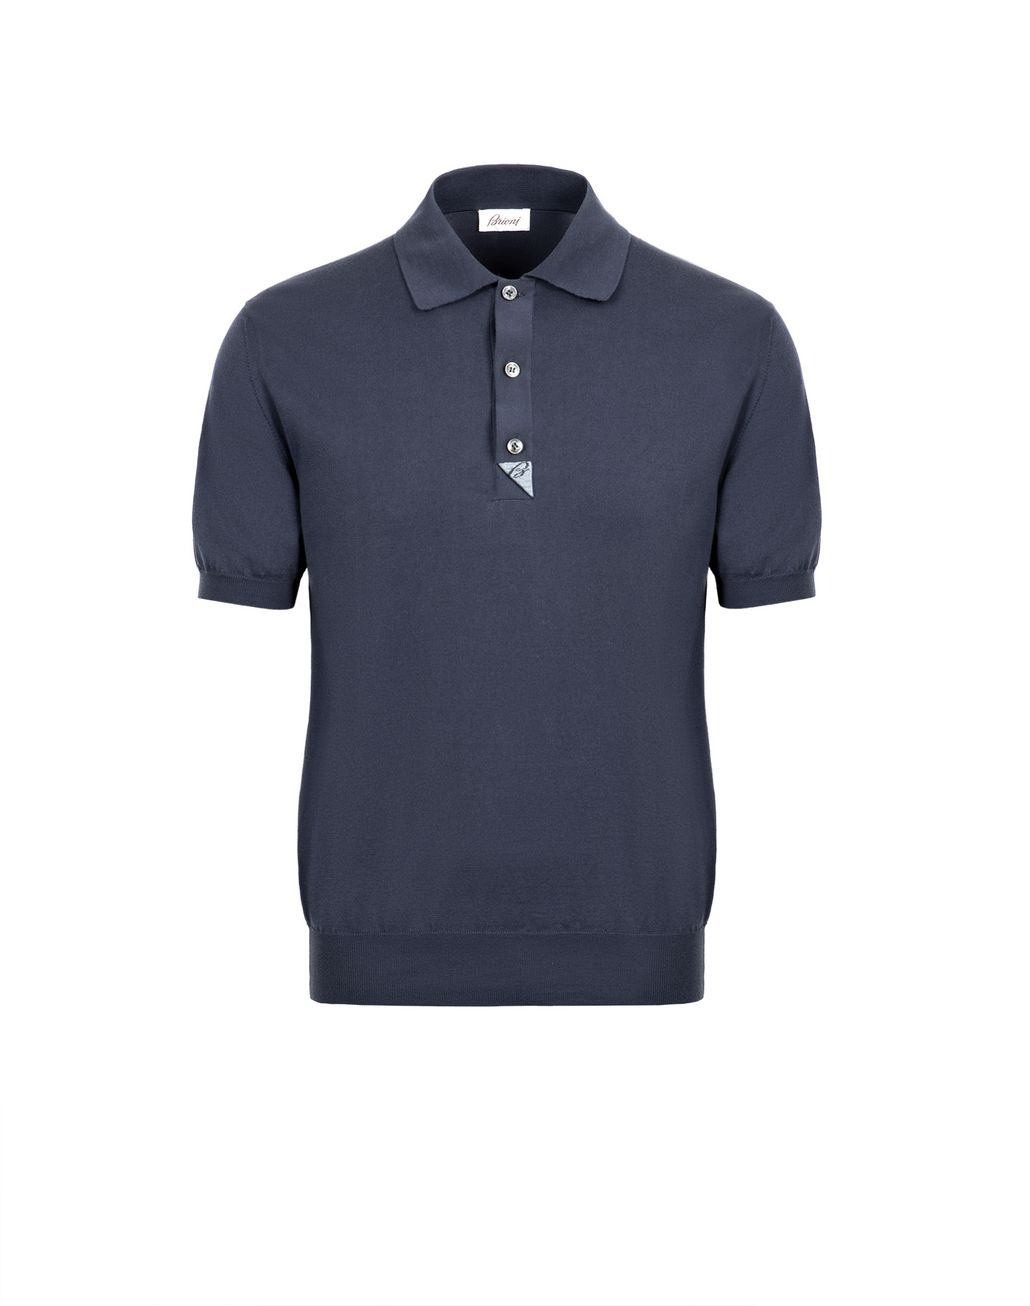 BRIONI Navy Blue and Sky Blue Cotton Polo Shirt with Silk Details T-Shirts & Polos Man f